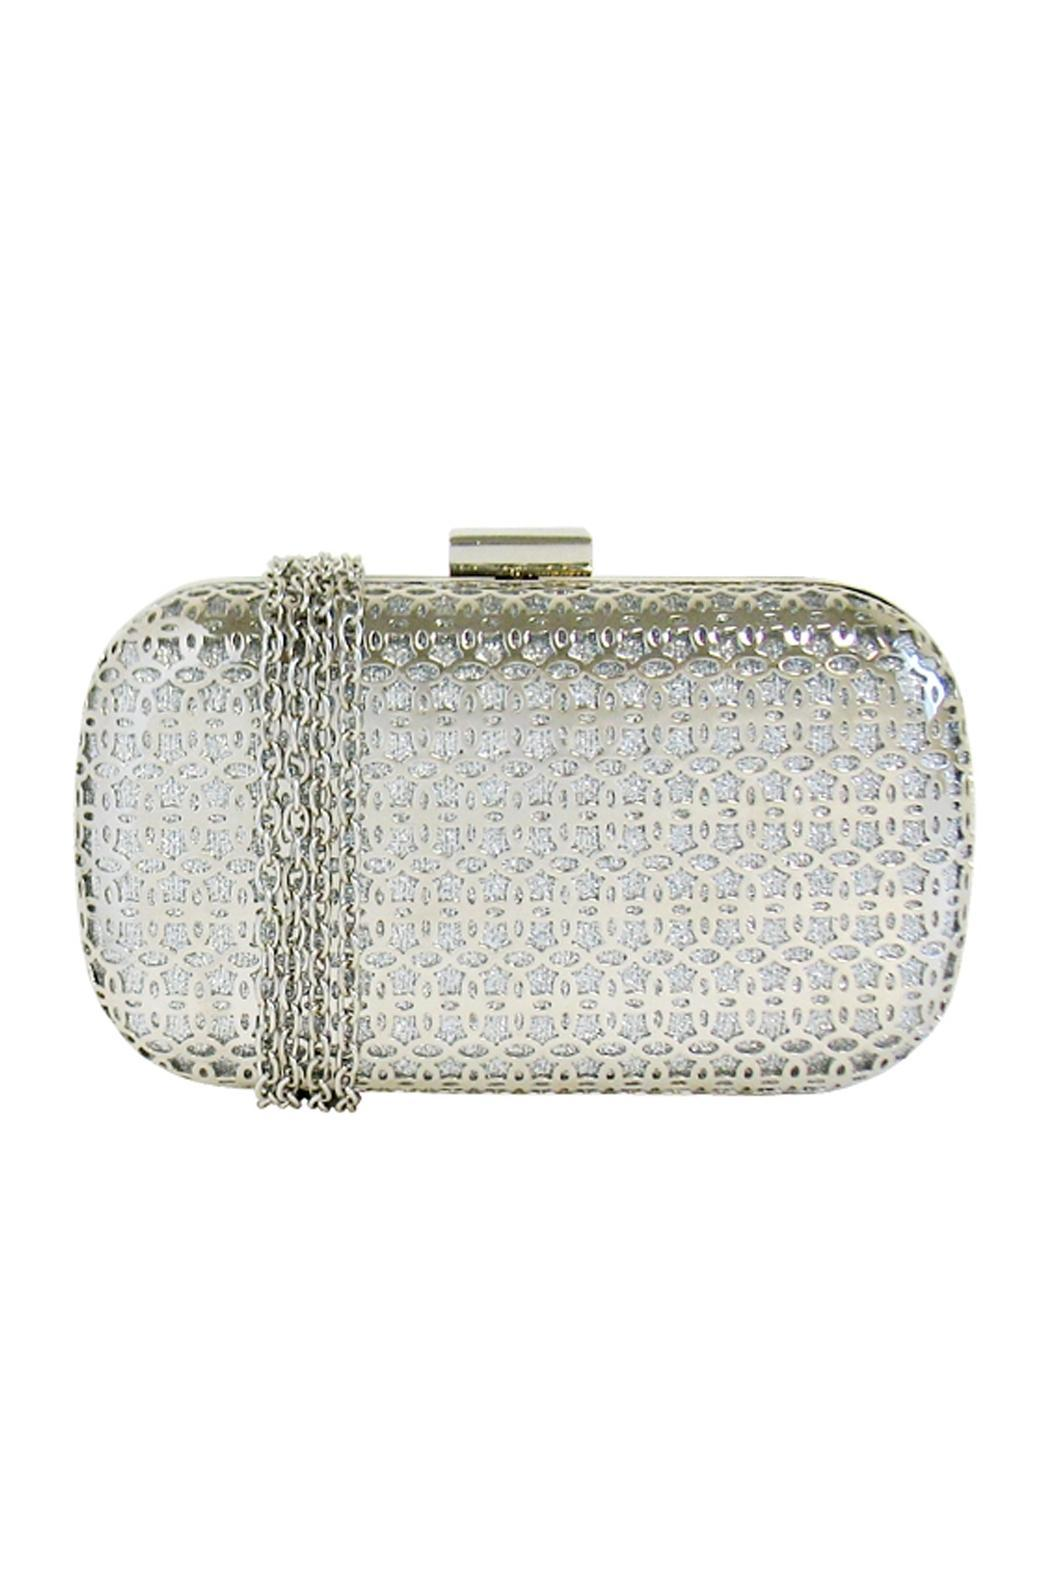 Wild Lilies Jewelry  Metallic Box Clutch - Front Full Image